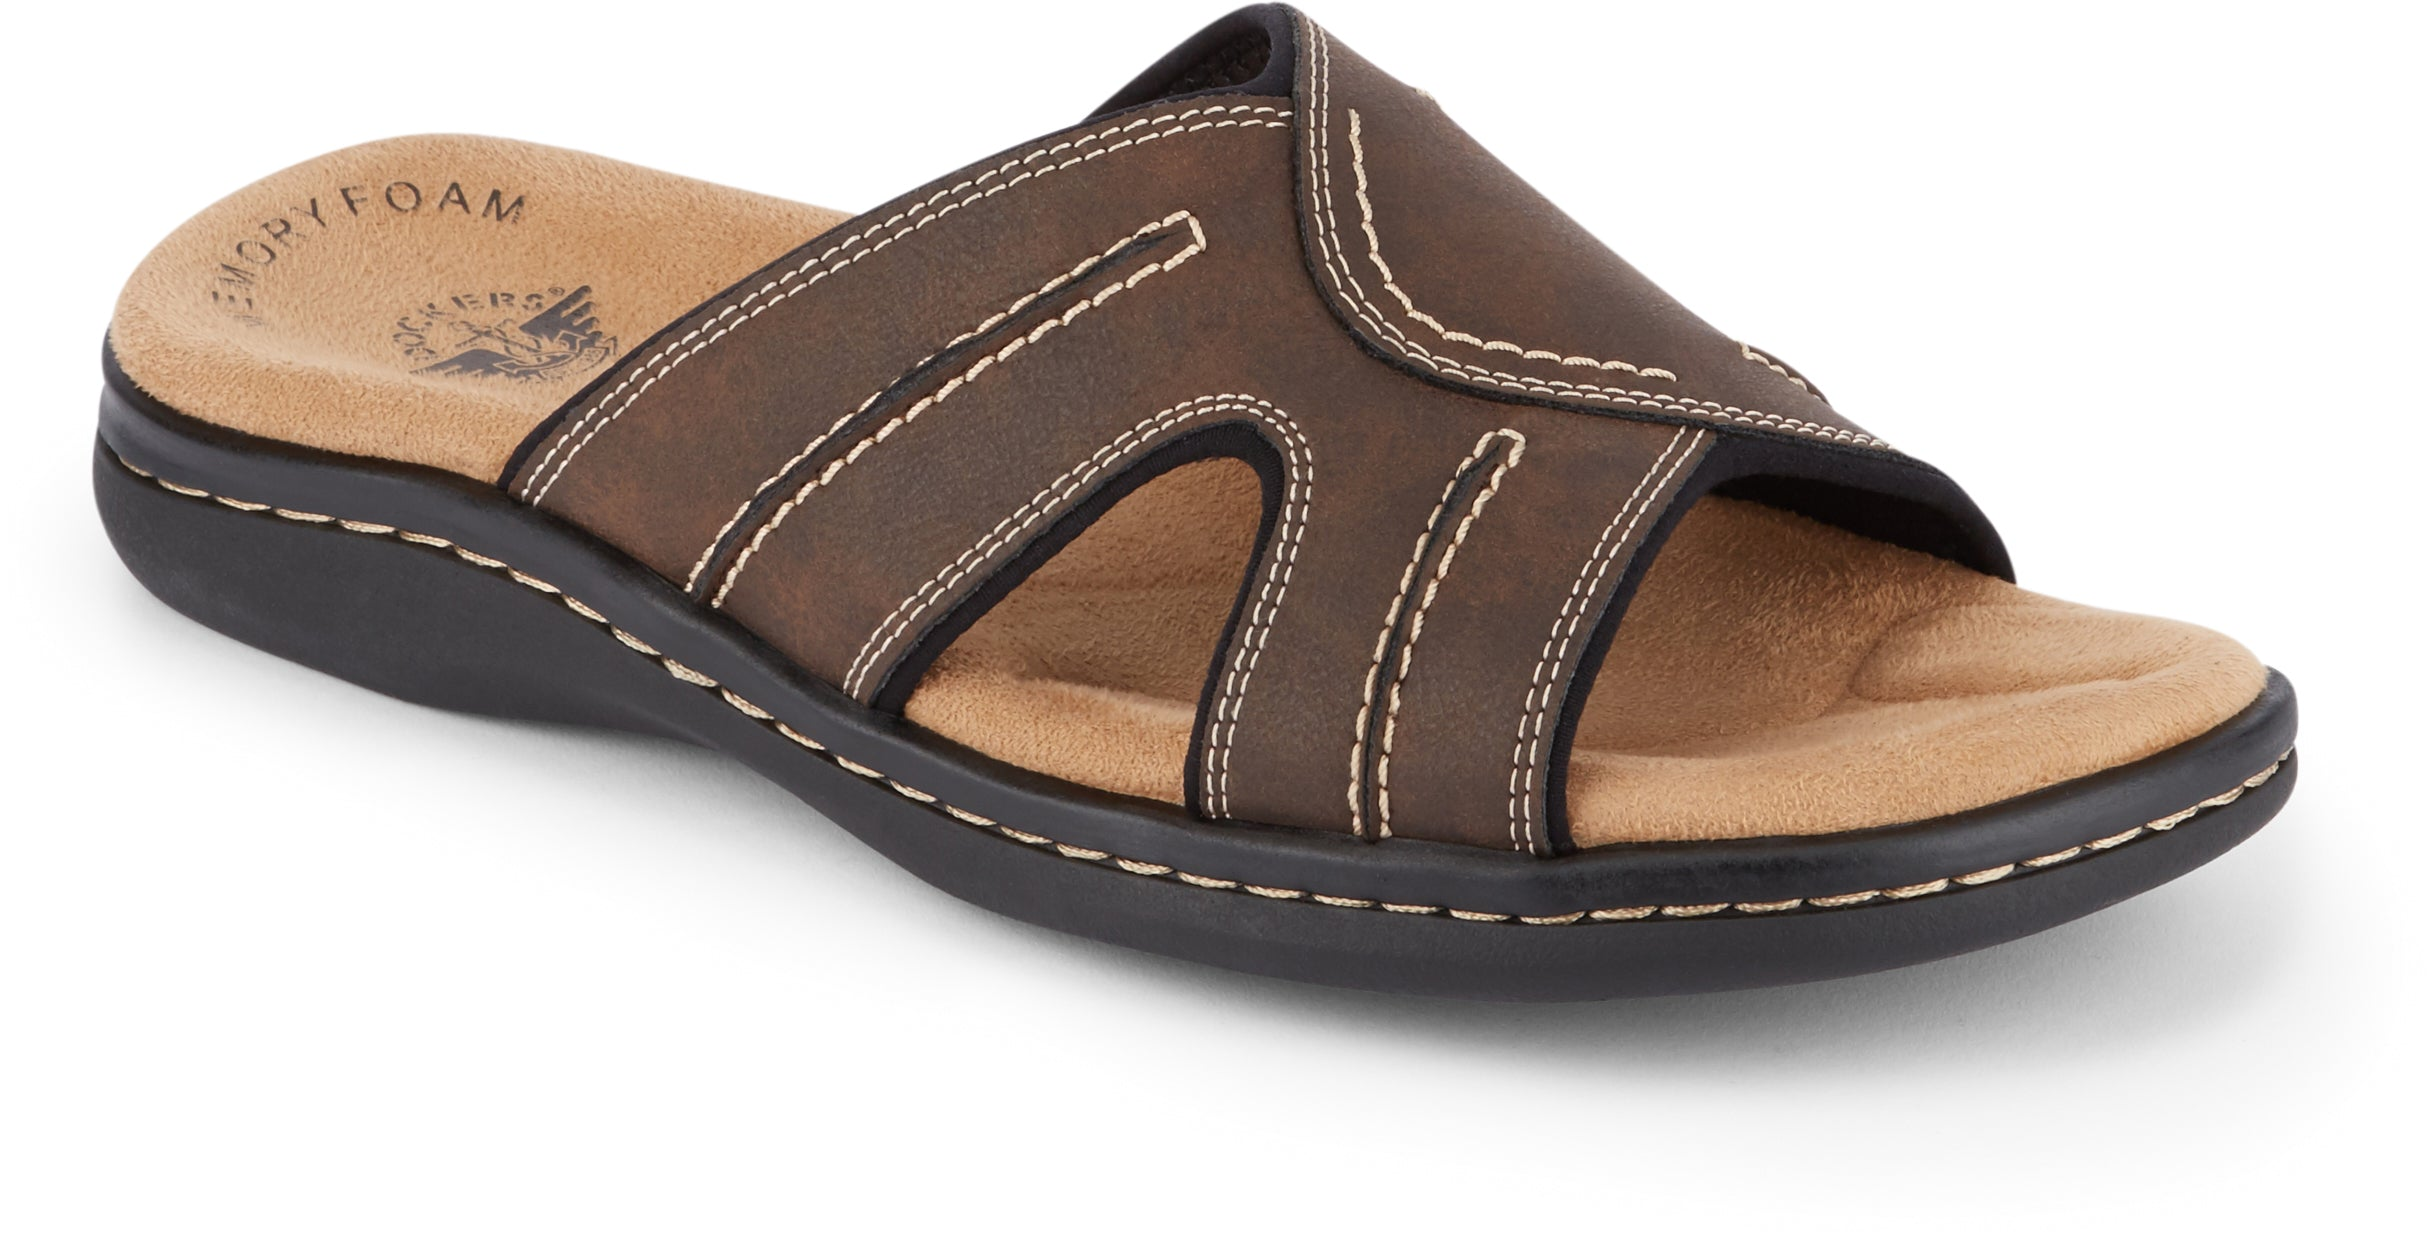 Dockers Men's Sunland Slide Sandal in Dark Brown from the side view